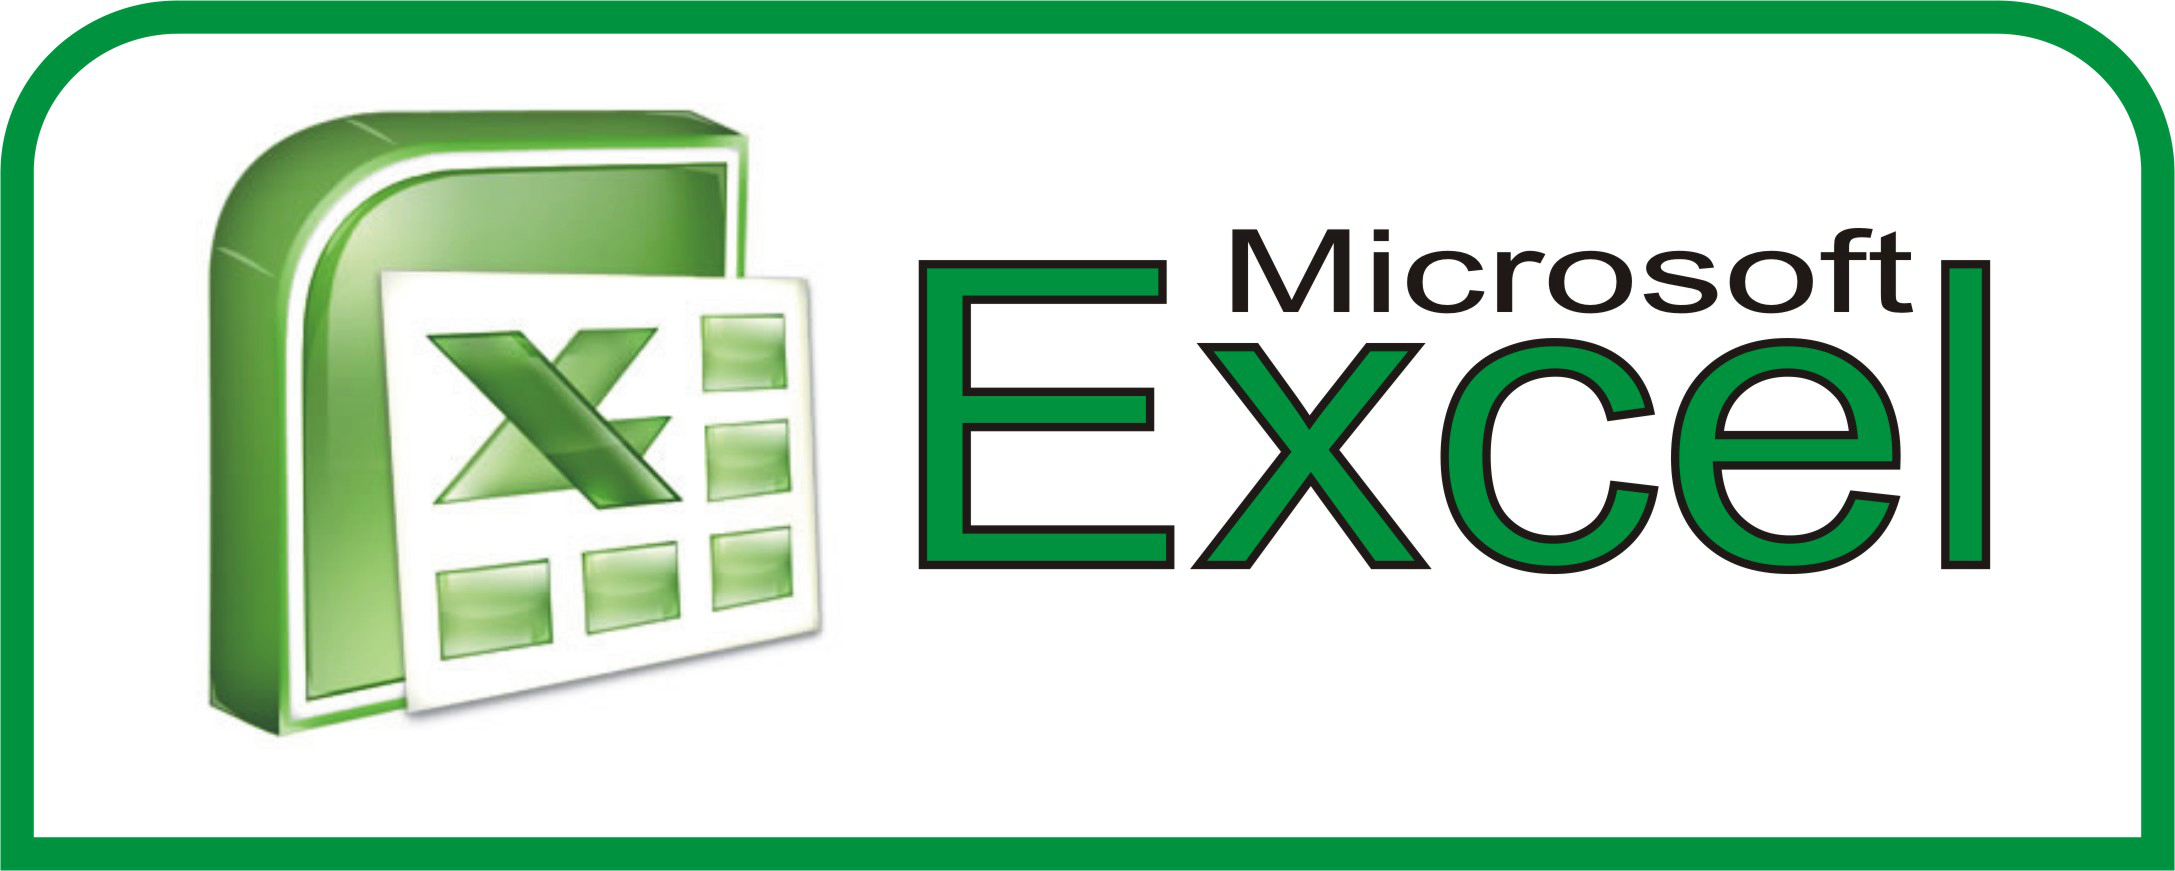 Ediblewildsus  Fascinating  Excel Shortcuts You Probably Didnt Know About  Techdissected With Lovable Comparison In Excel Besides About Microsoft Excel Furthermore Excel Vlookup Na With Breathtaking Random Number List Generator Excel Also Password Protect Excel Files In Addition Locking Certain Cells In Excel And What Excel Formula To Use As Well As Printing Excel With Lines Additionally Excel Graph  Y Axis From Techdissectedcom With Ediblewildsus  Lovable  Excel Shortcuts You Probably Didnt Know About  Techdissected With Breathtaking Comparison In Excel Besides About Microsoft Excel Furthermore Excel Vlookup Na And Fascinating Random Number List Generator Excel Also Password Protect Excel Files In Addition Locking Certain Cells In Excel From Techdissectedcom